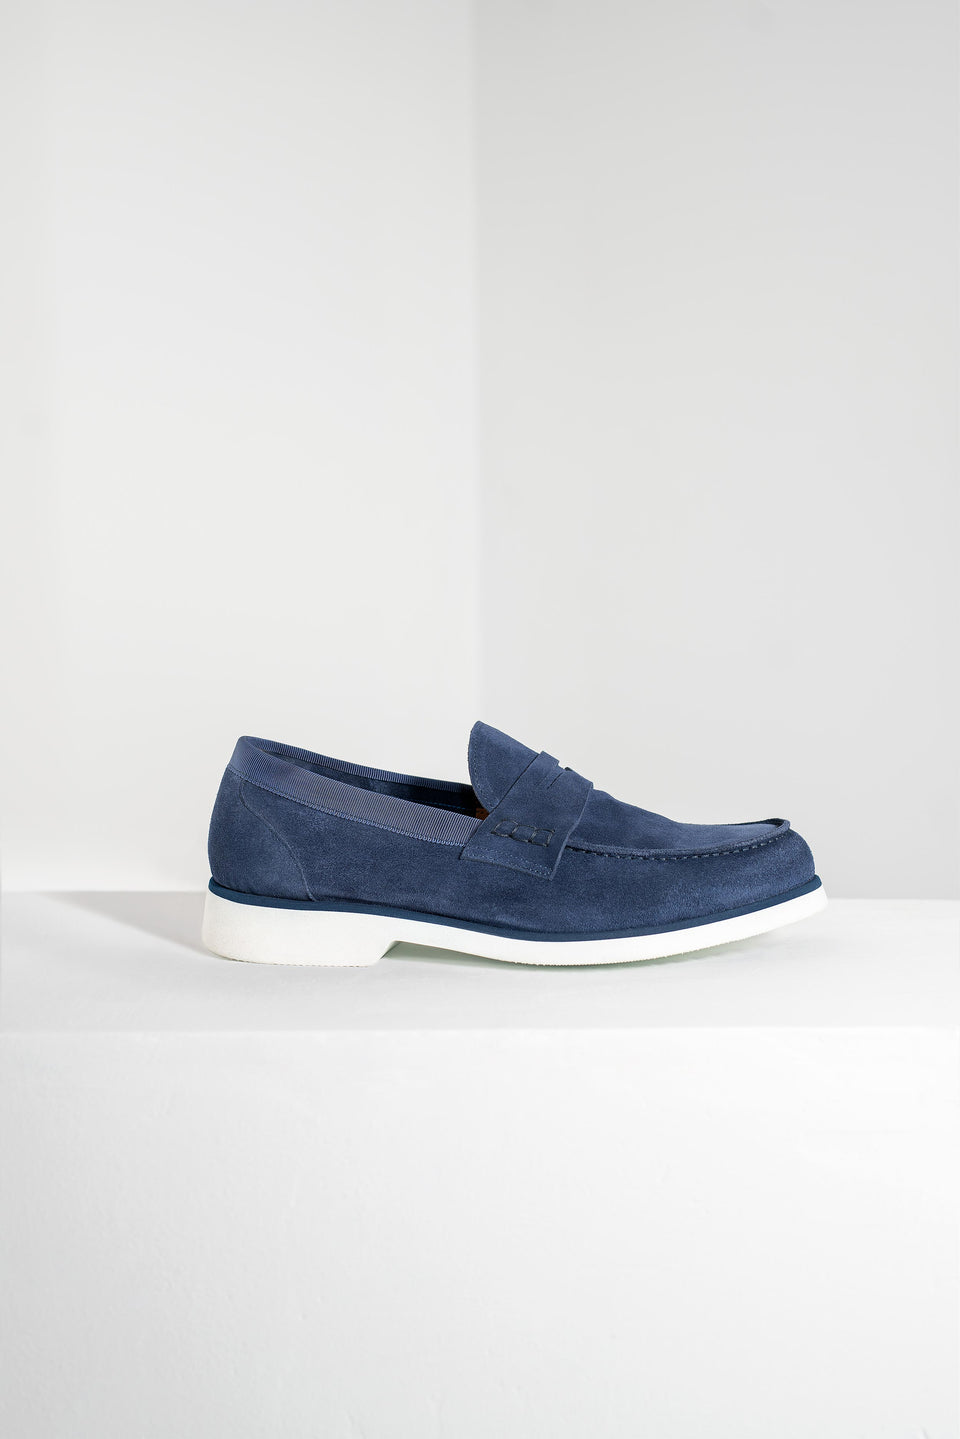 002 - Loafer in Blue Suede